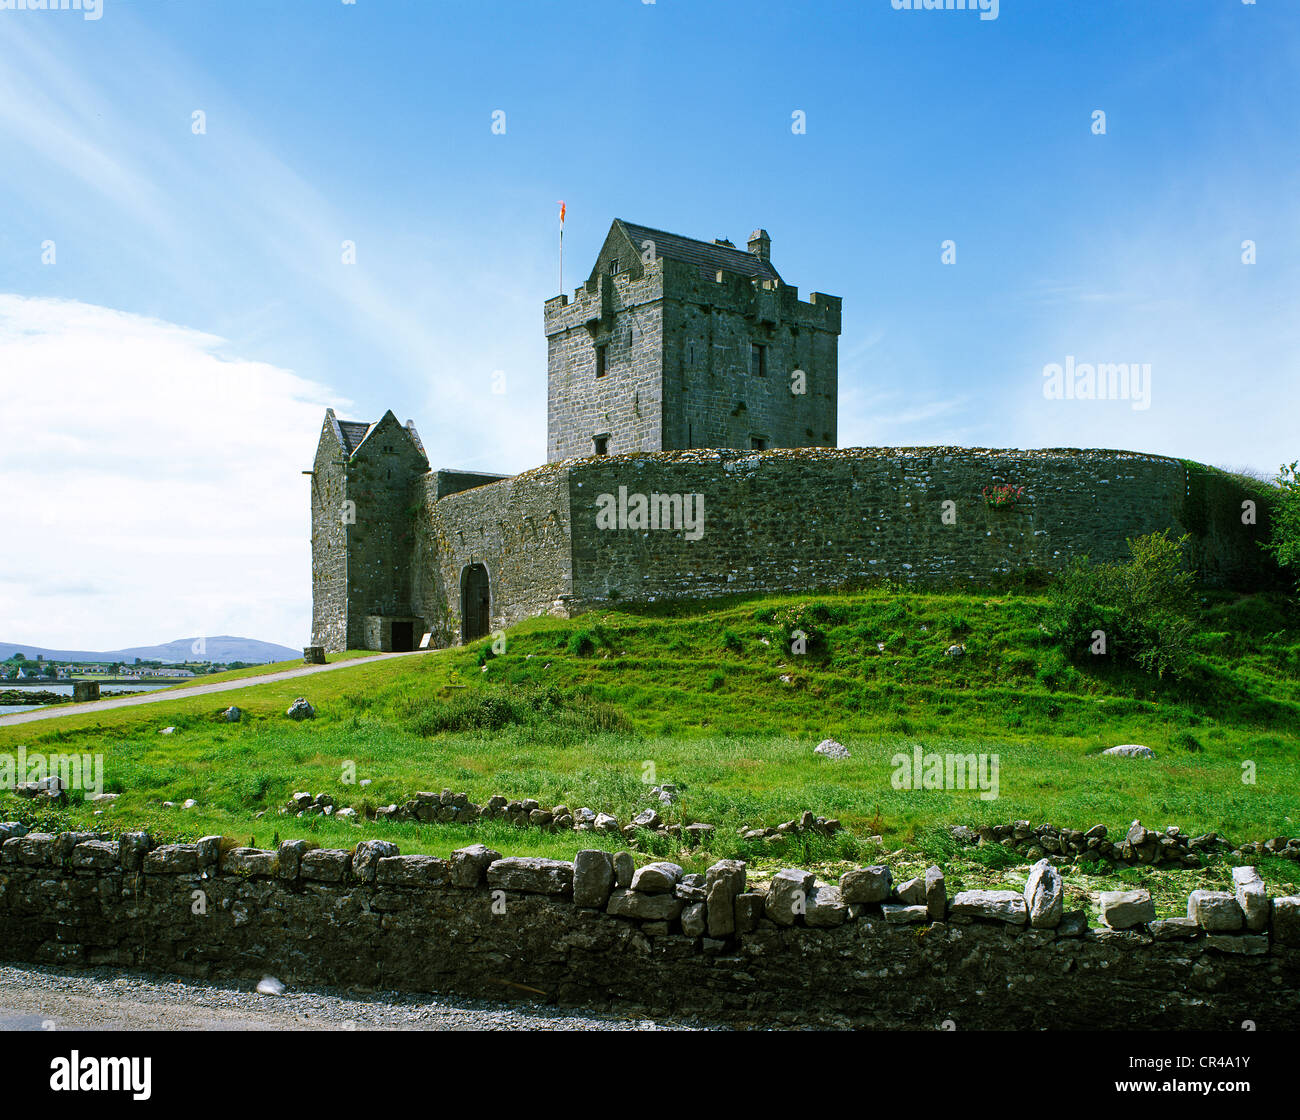 Dungaire Castle, Kinvarra, County Galway, Republic of Ireland, Europe - Stock Image